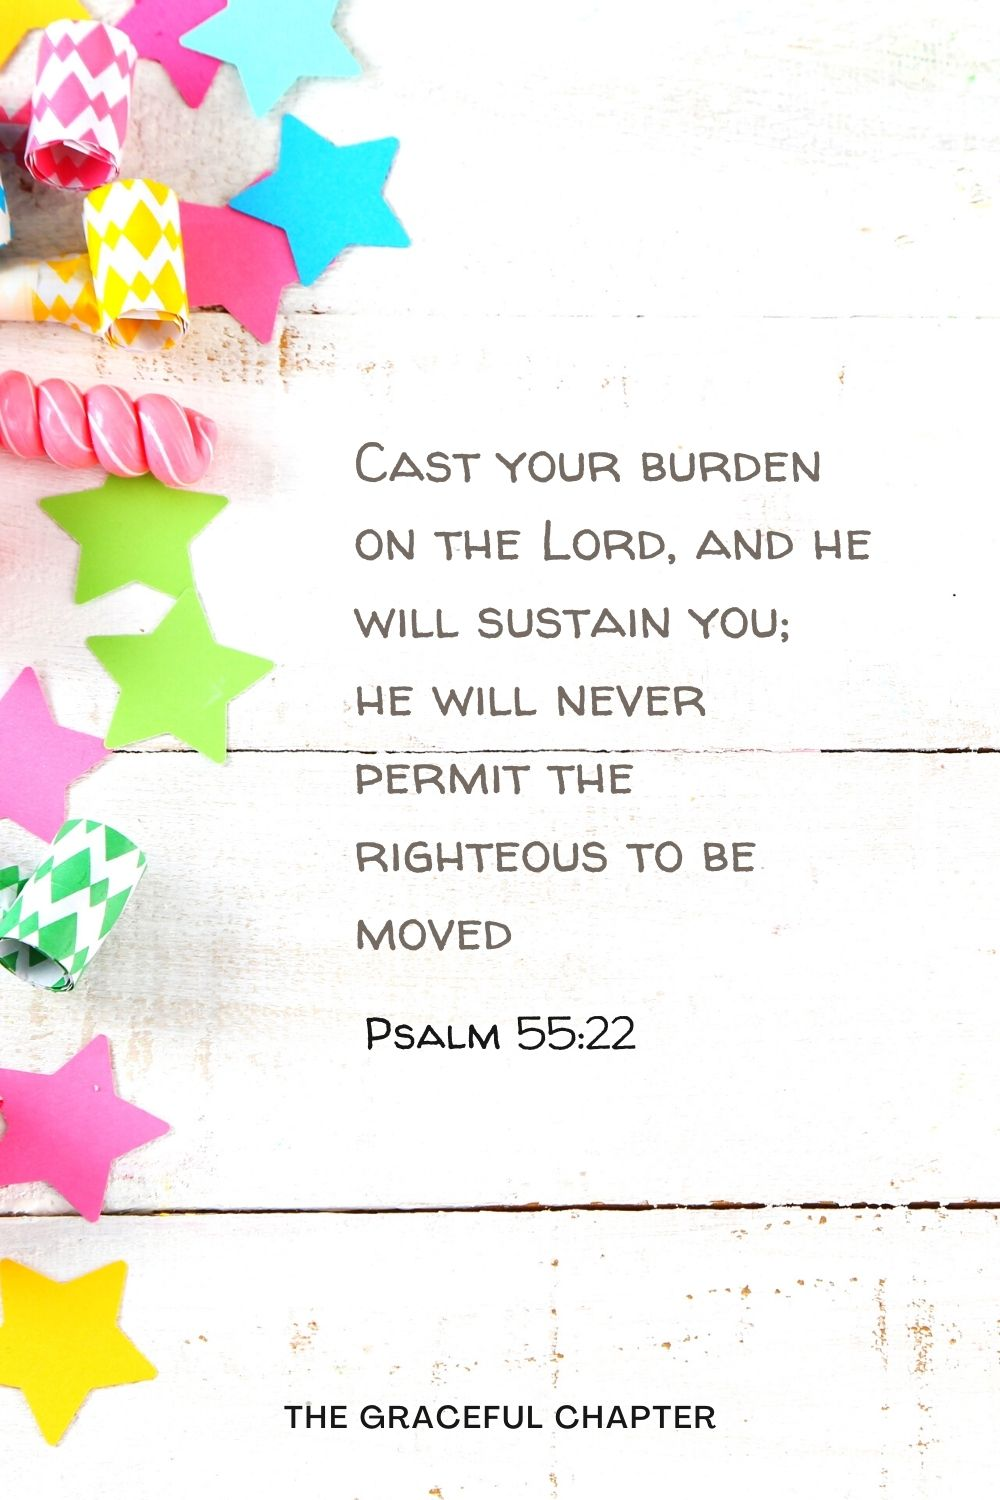 Cast your burden on the Lord, and he will sustain you; he will never permit the righteous to be moved. Psalm 55:22